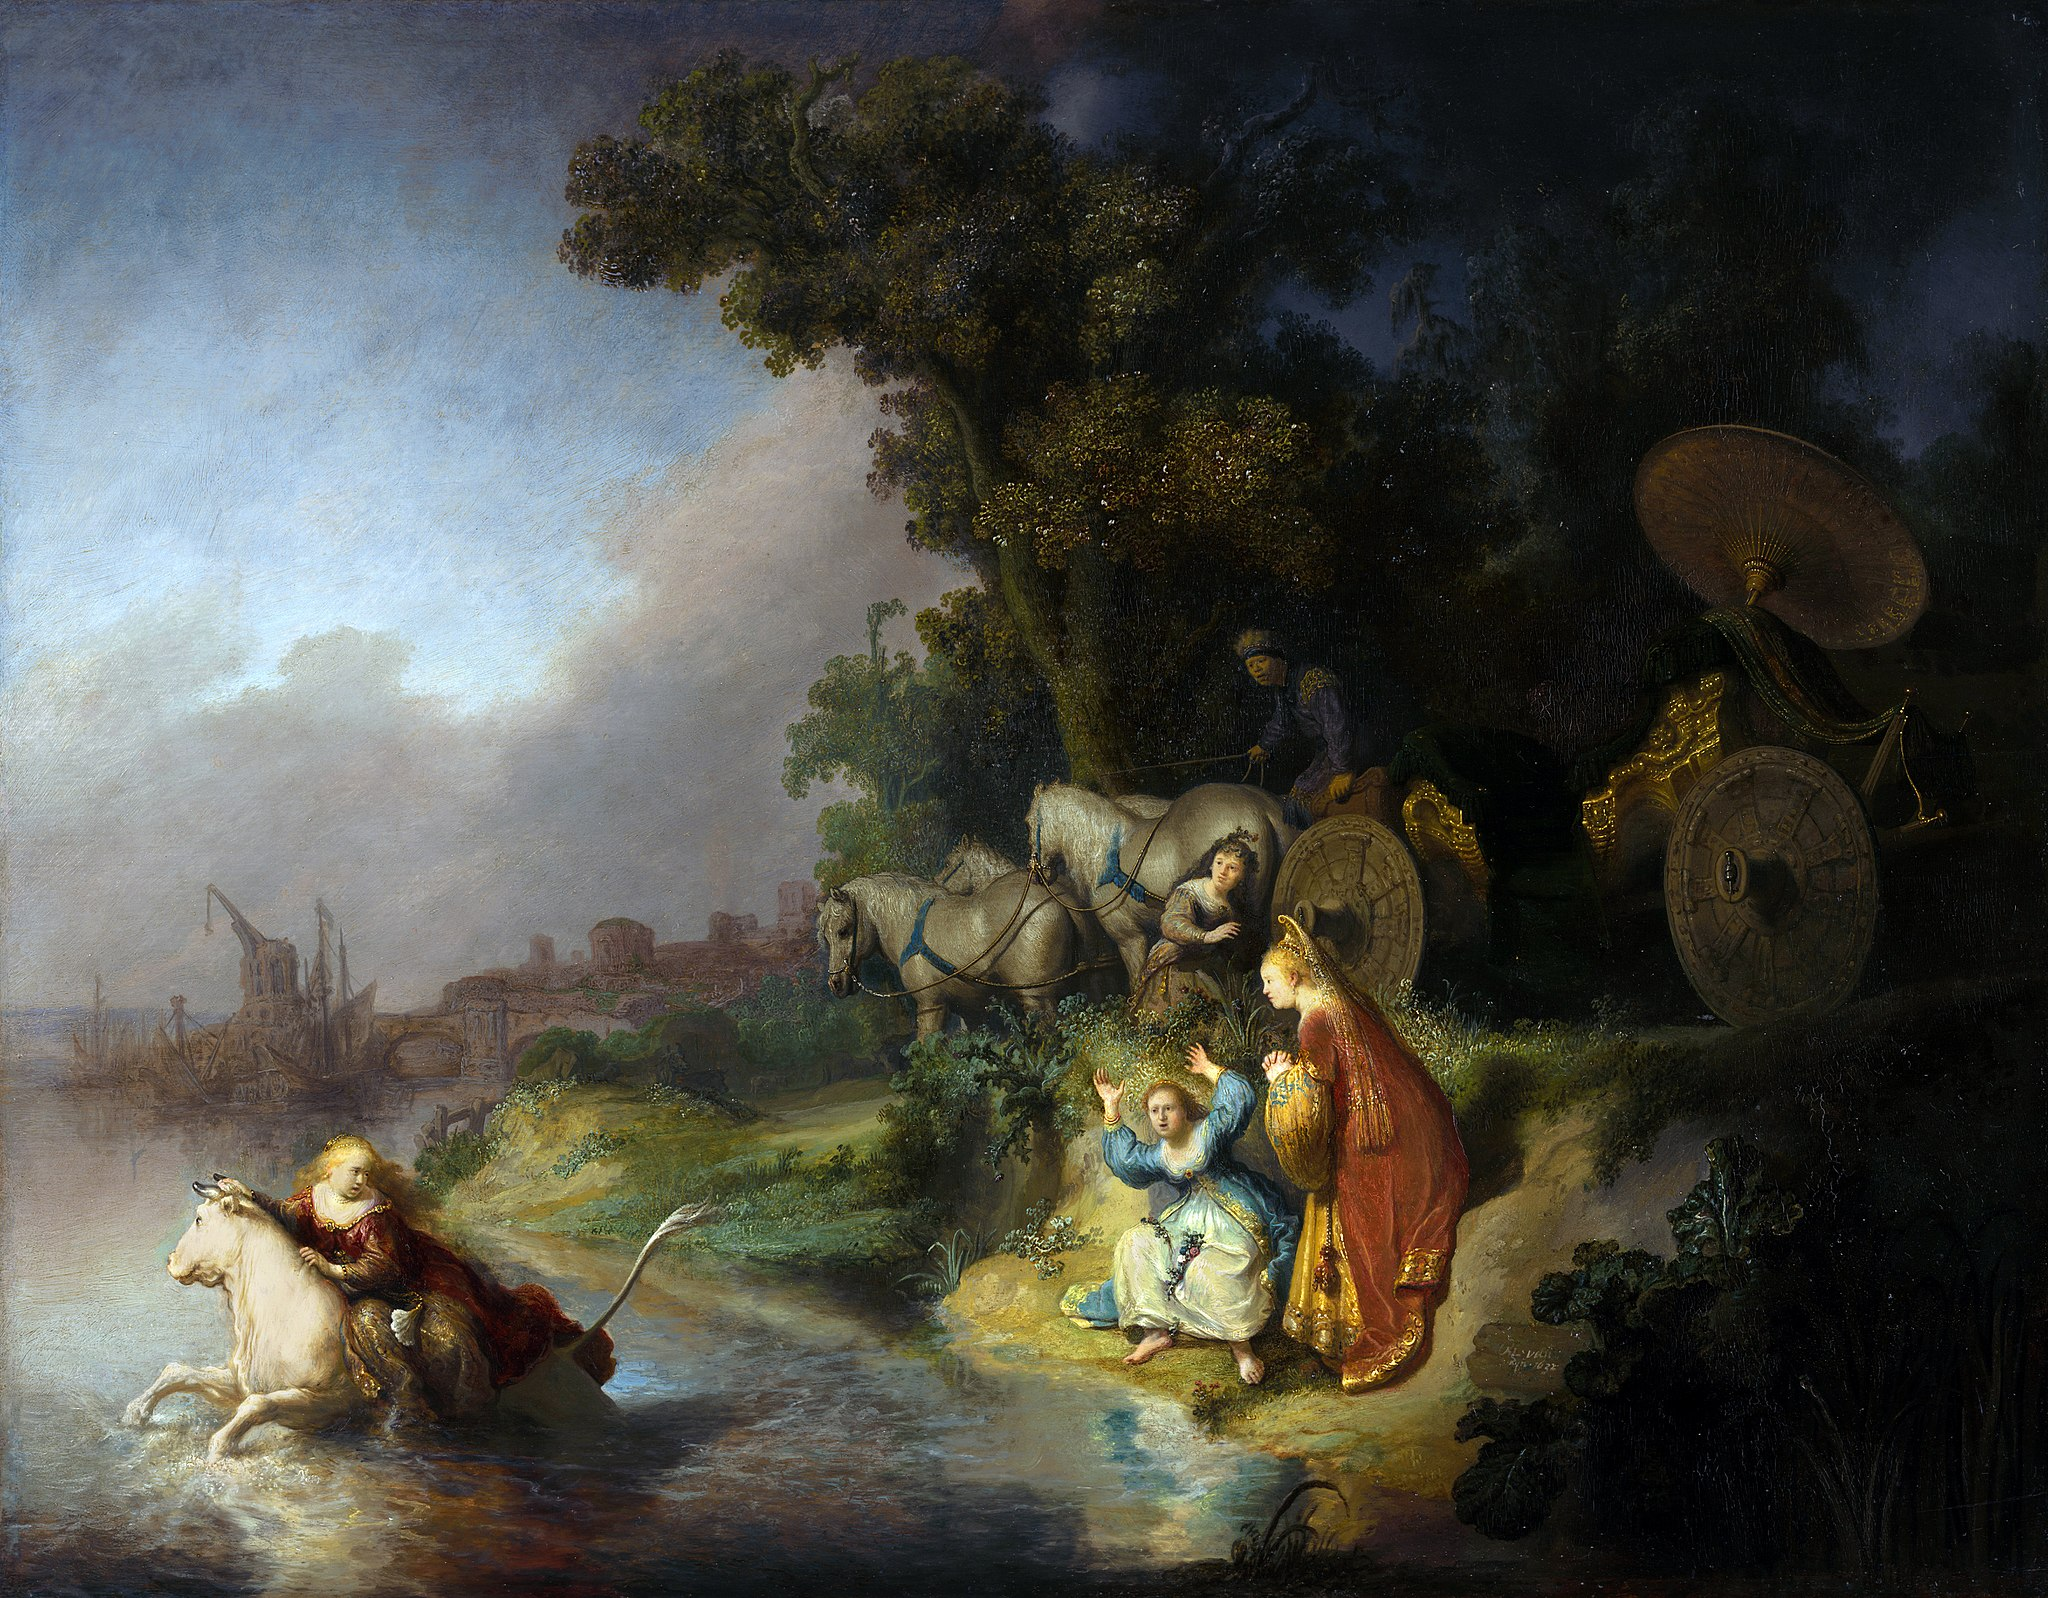 Rembrandt_Abduction_of_Europa[1]